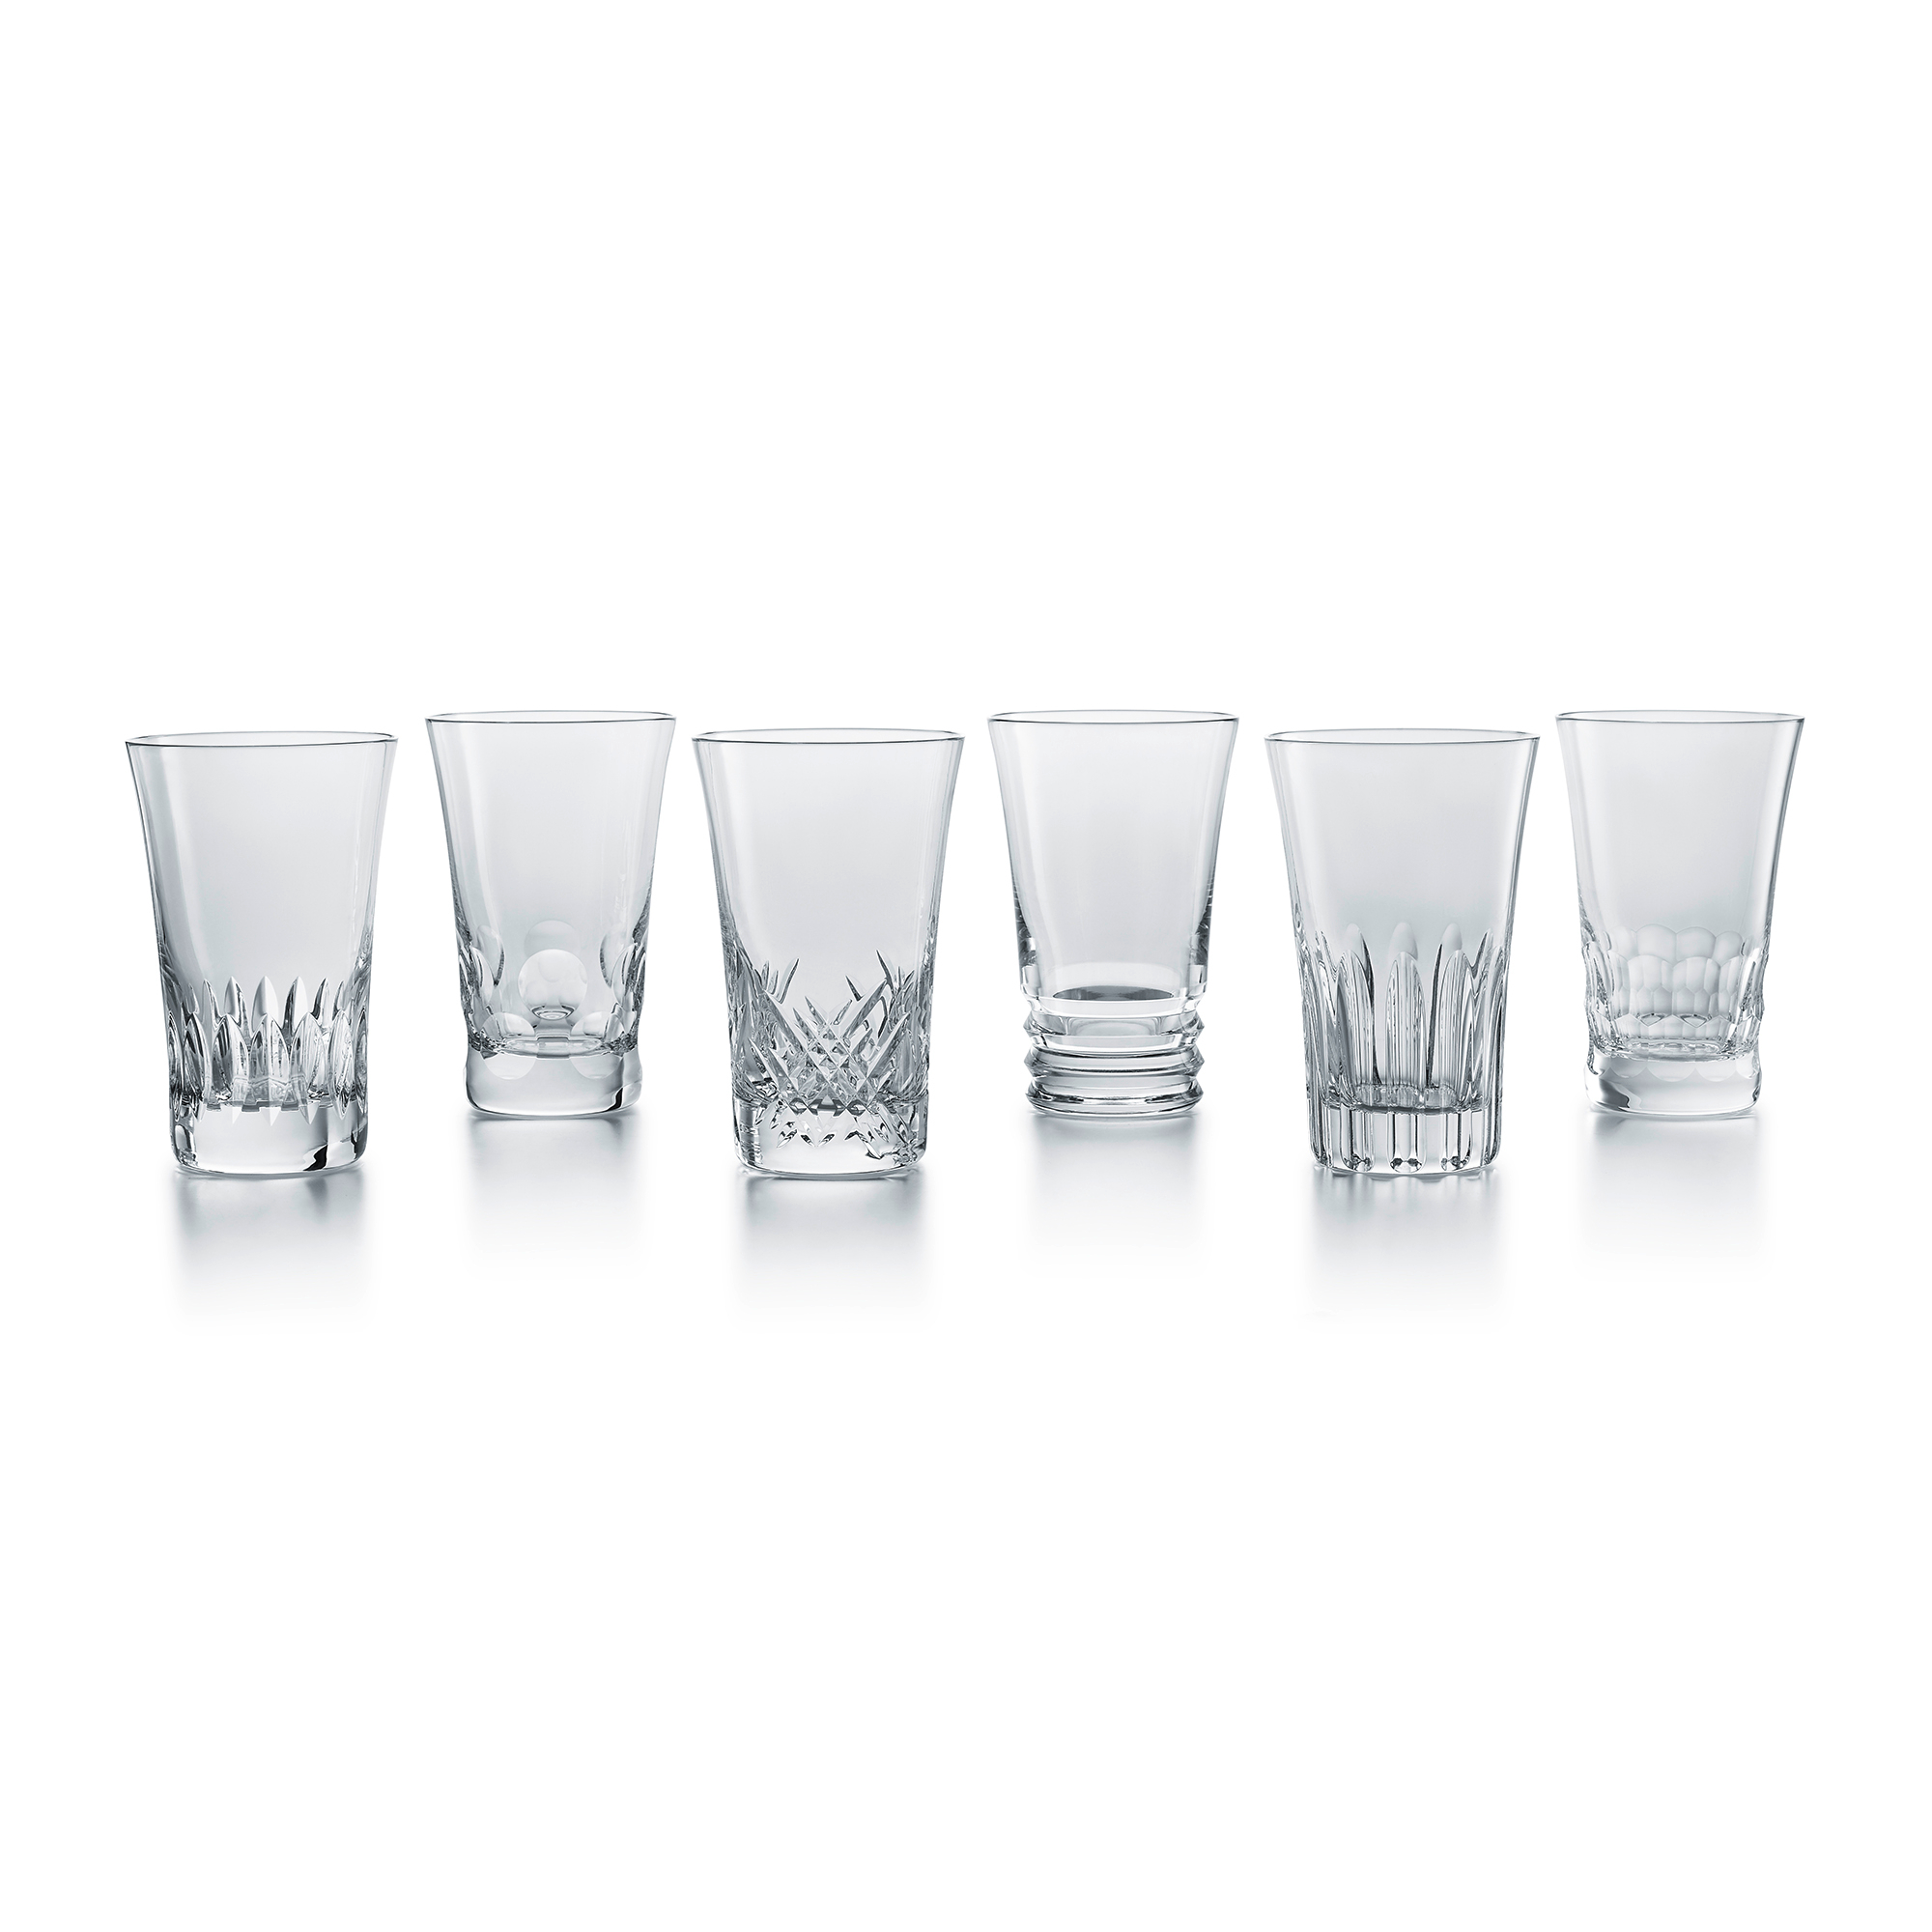 Baccarat Everyday Grande Highball, Set of 6